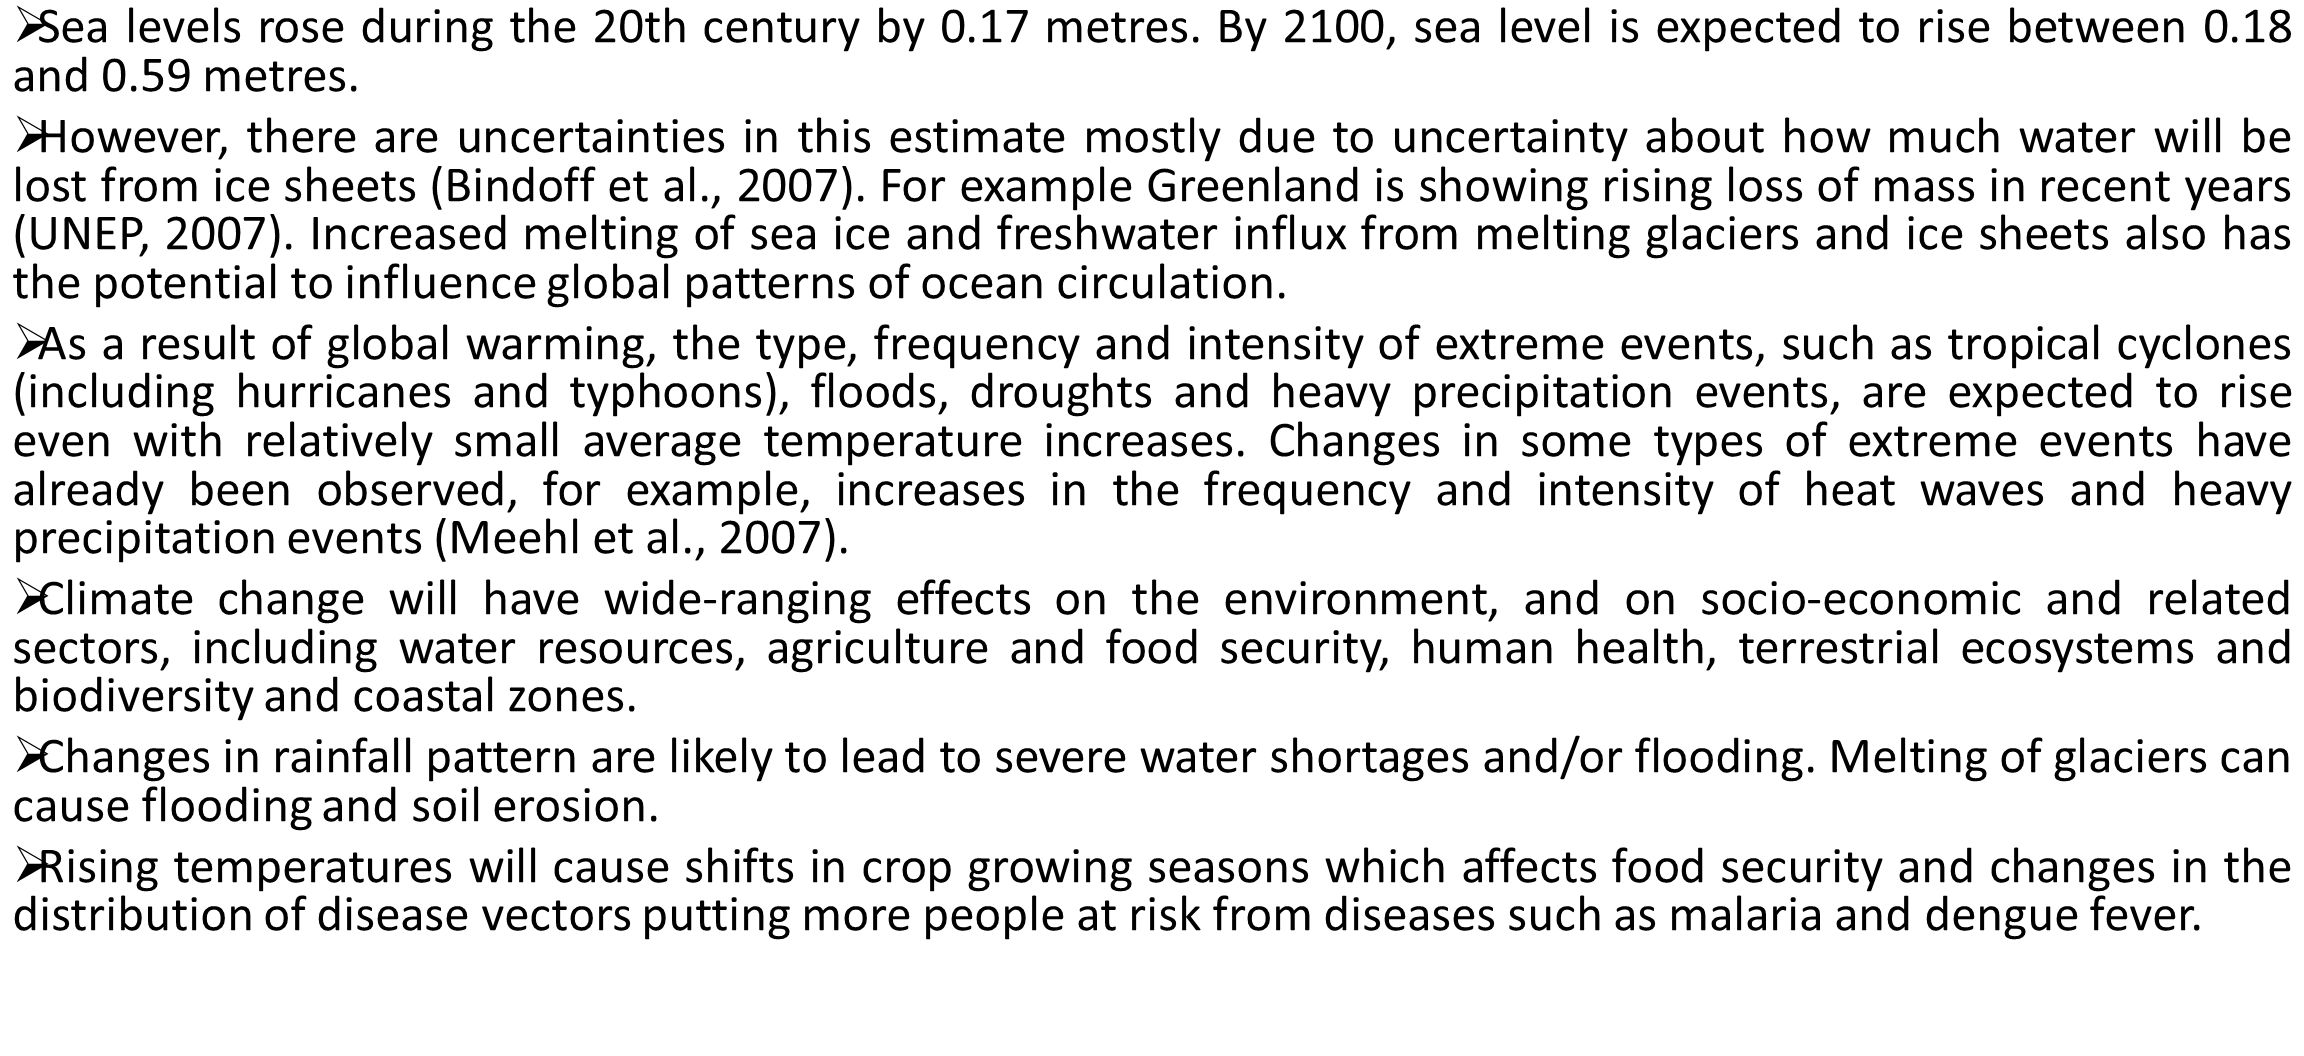 Sea levels rose during the 20th century by 0. 17 metres